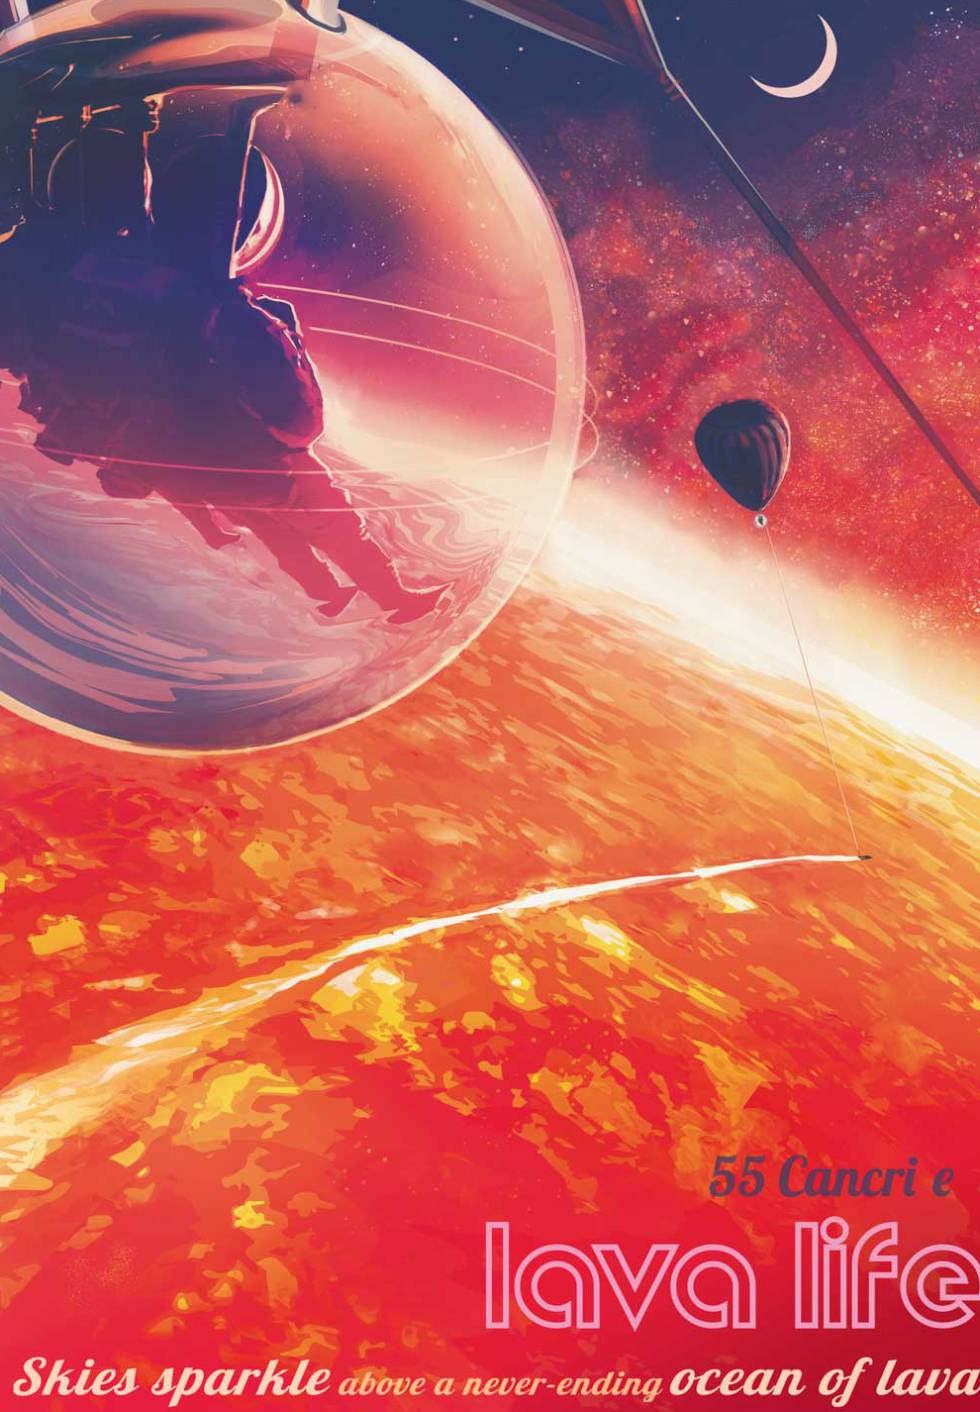 NASA promotional poster on a hypothetical trip to the lava oceans of exoplanet 55 Cancri e.